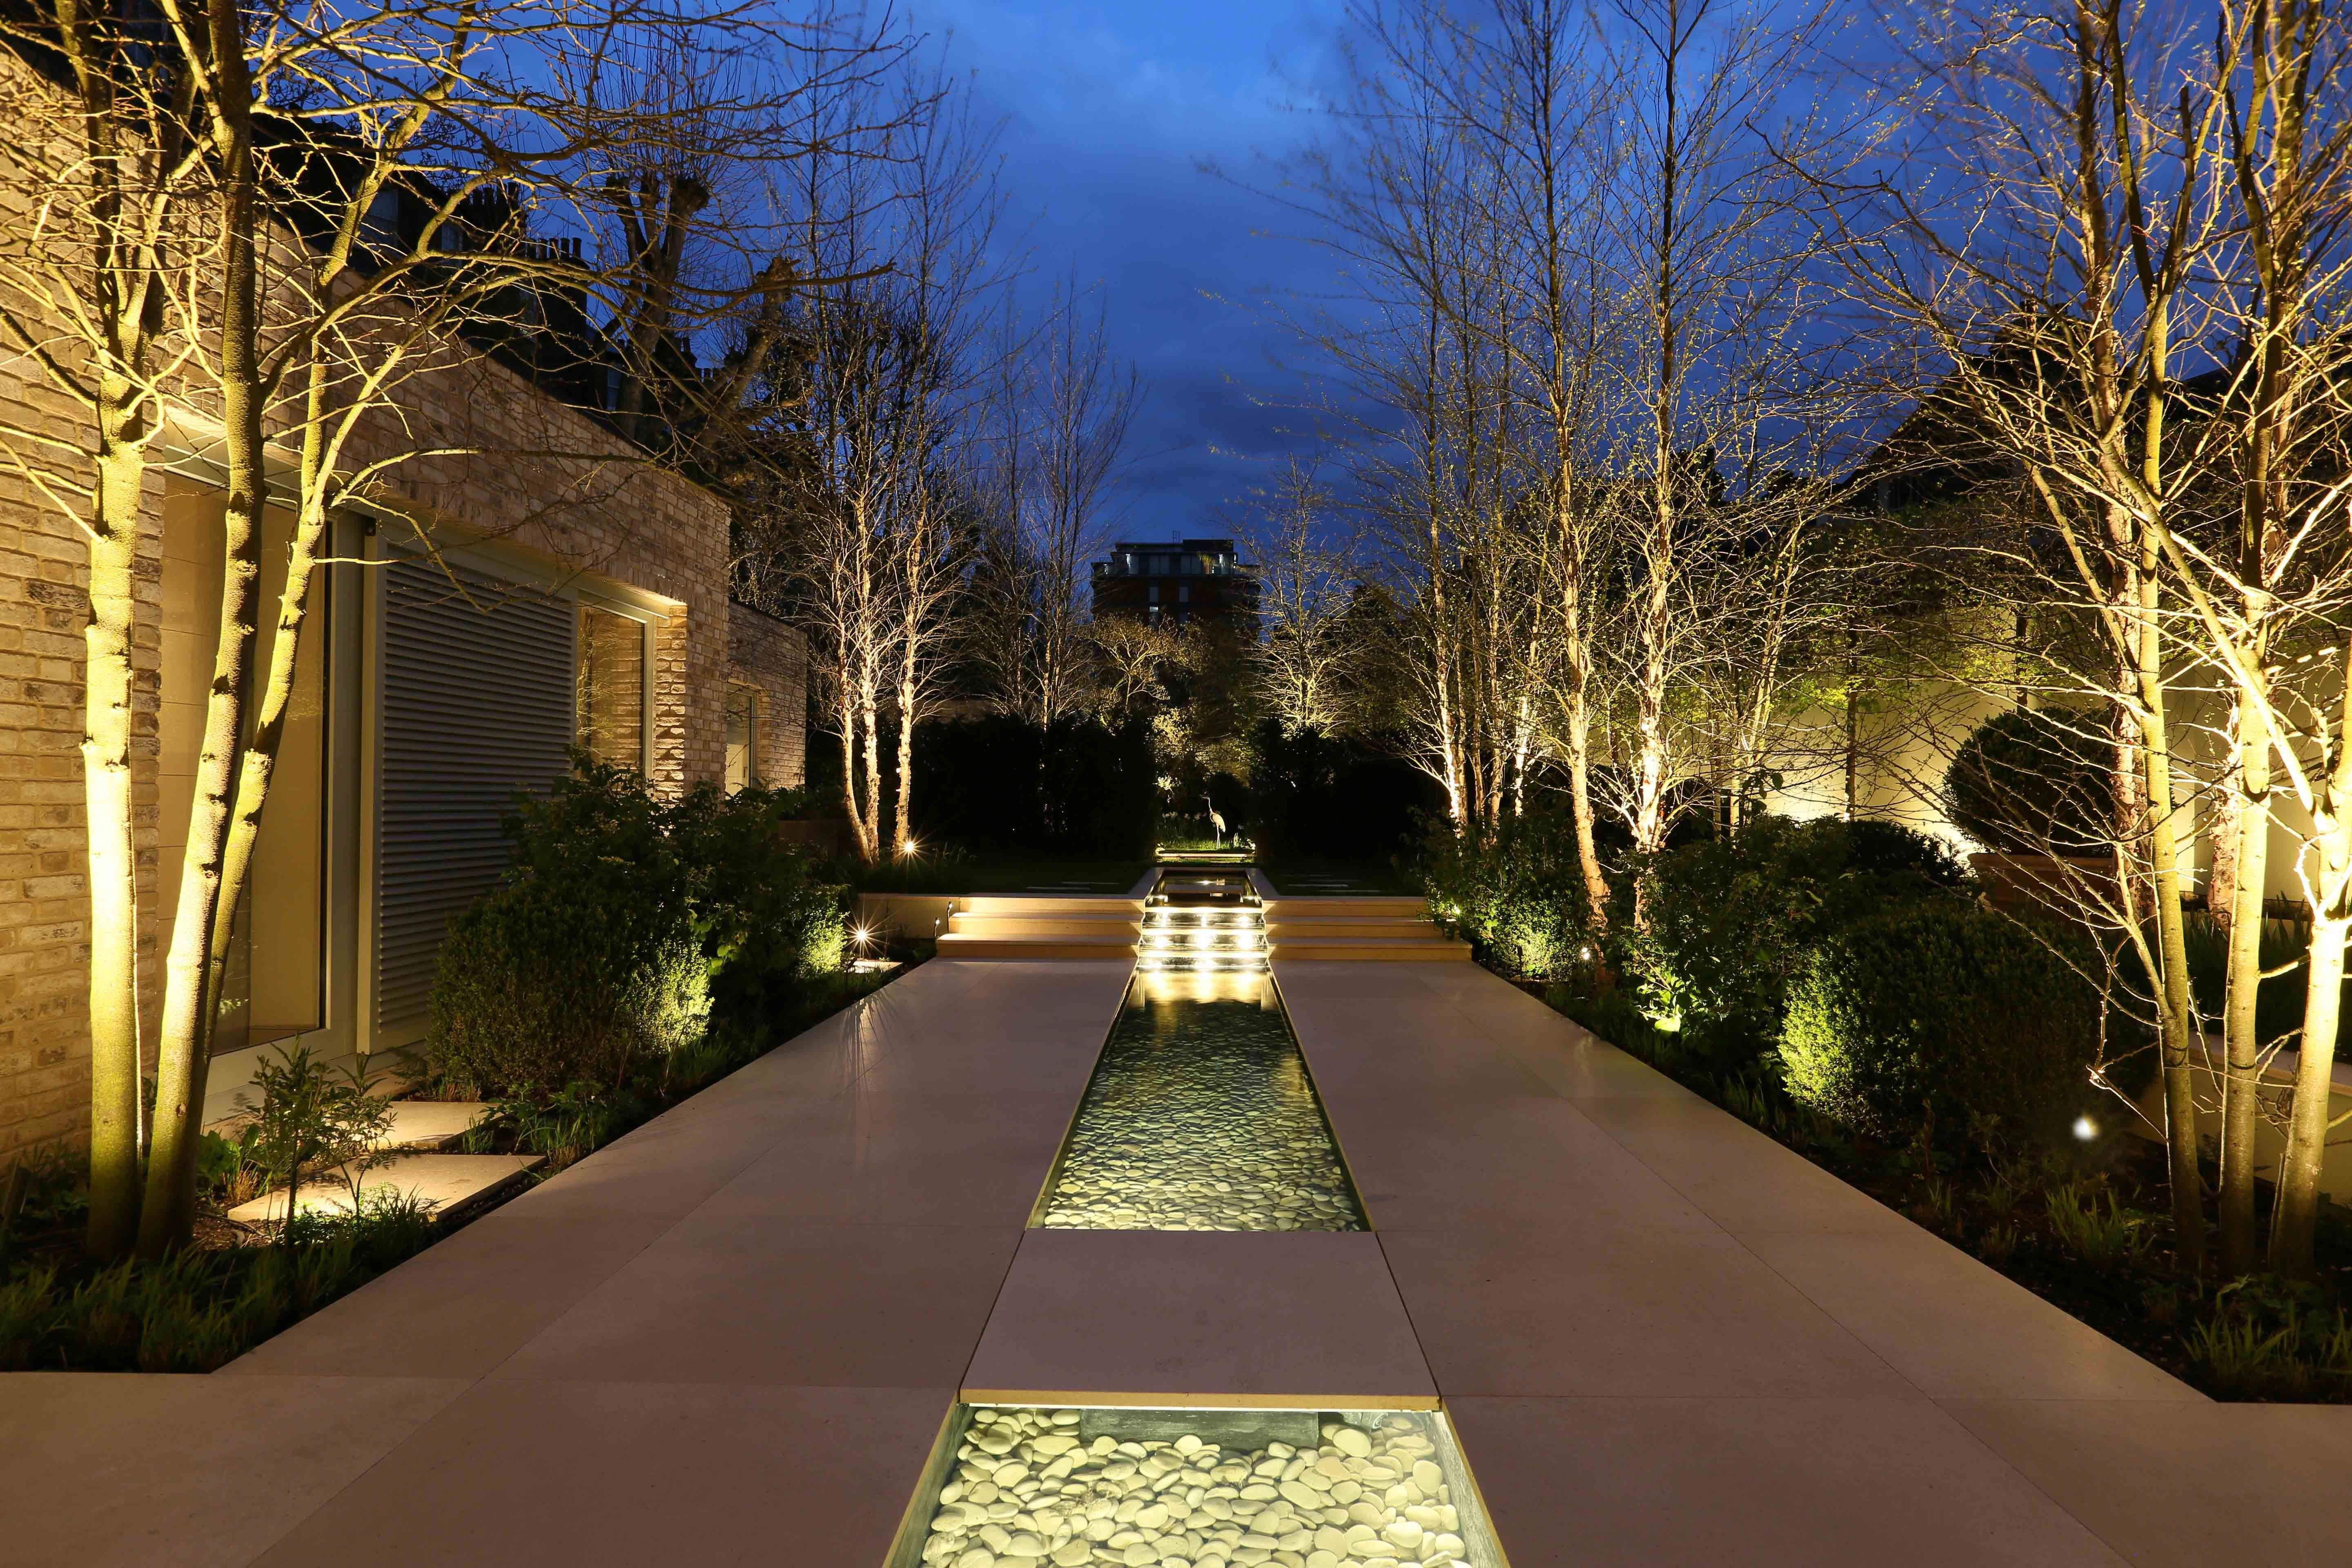 This Unique Outdoor Lighting Yard Is Certainly A Striking Design